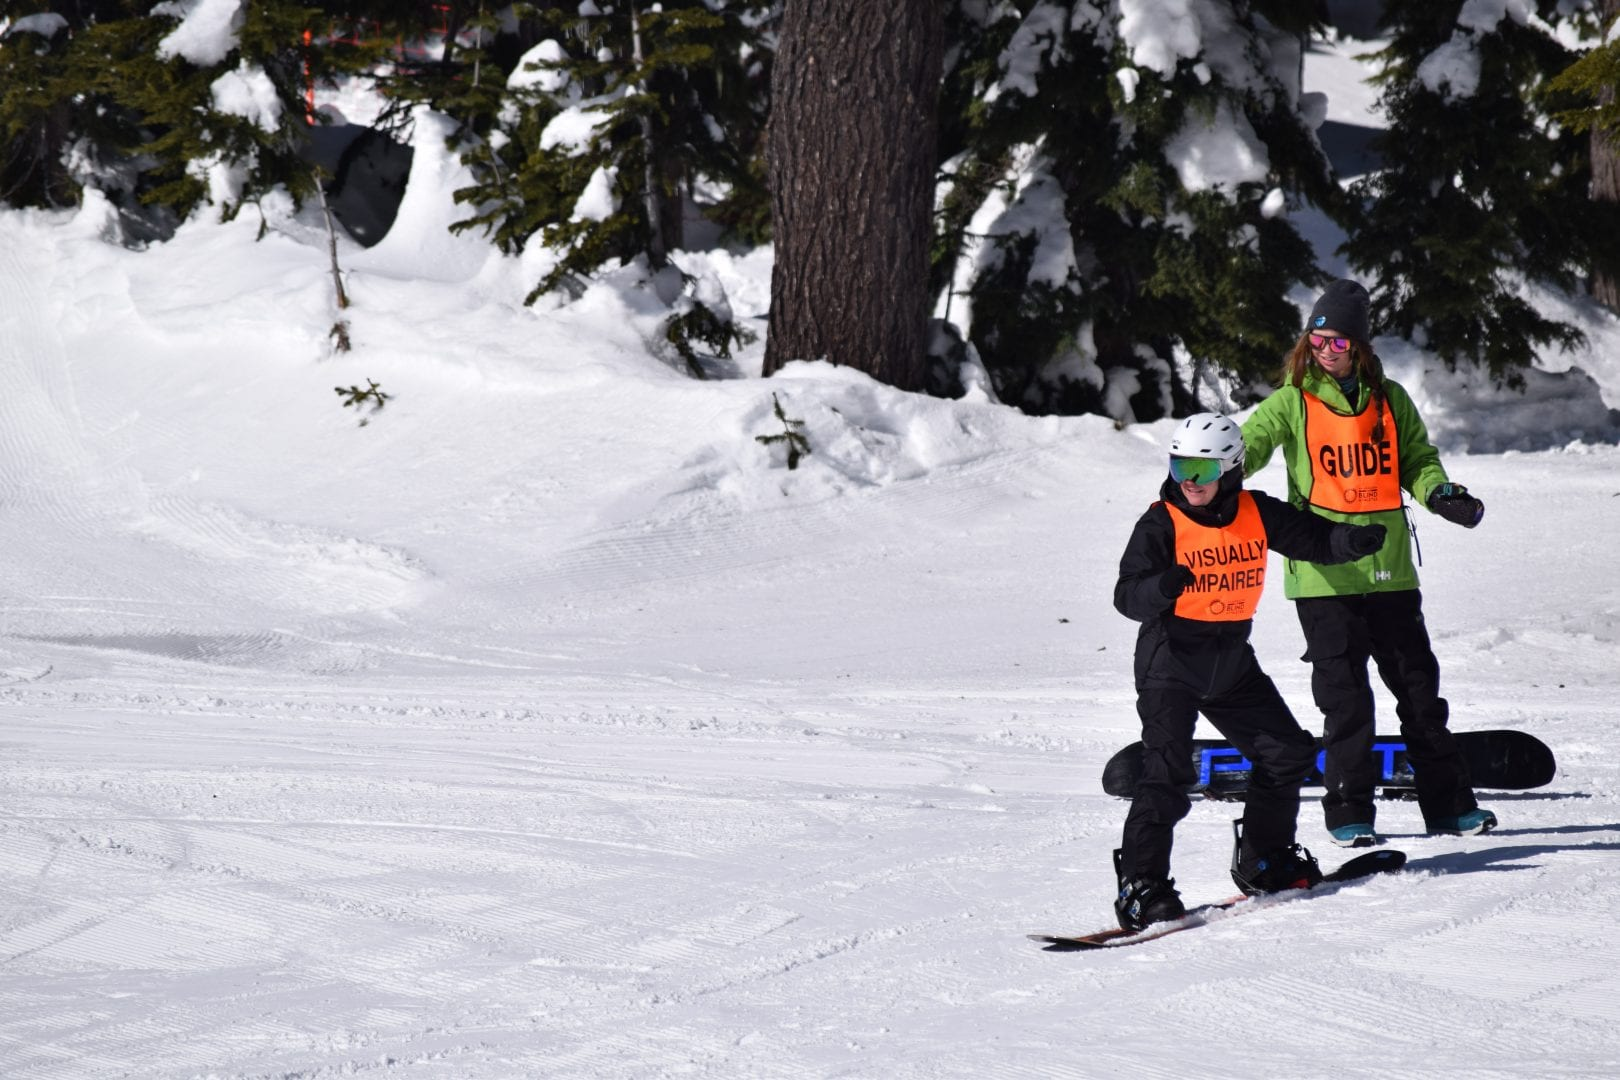 a student snowboarder in an orange vest on the snow, an instructor is behind them